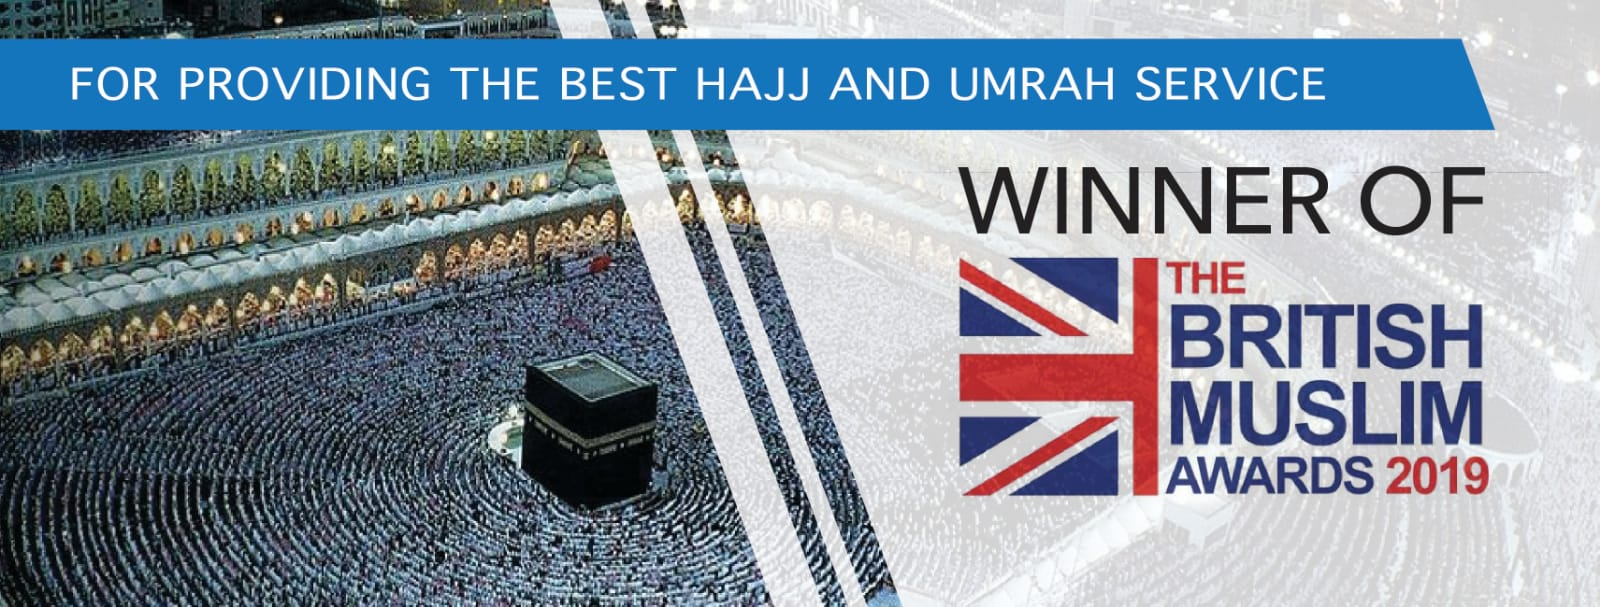 Hajj and Umrah Packages By Al Haramain Tours